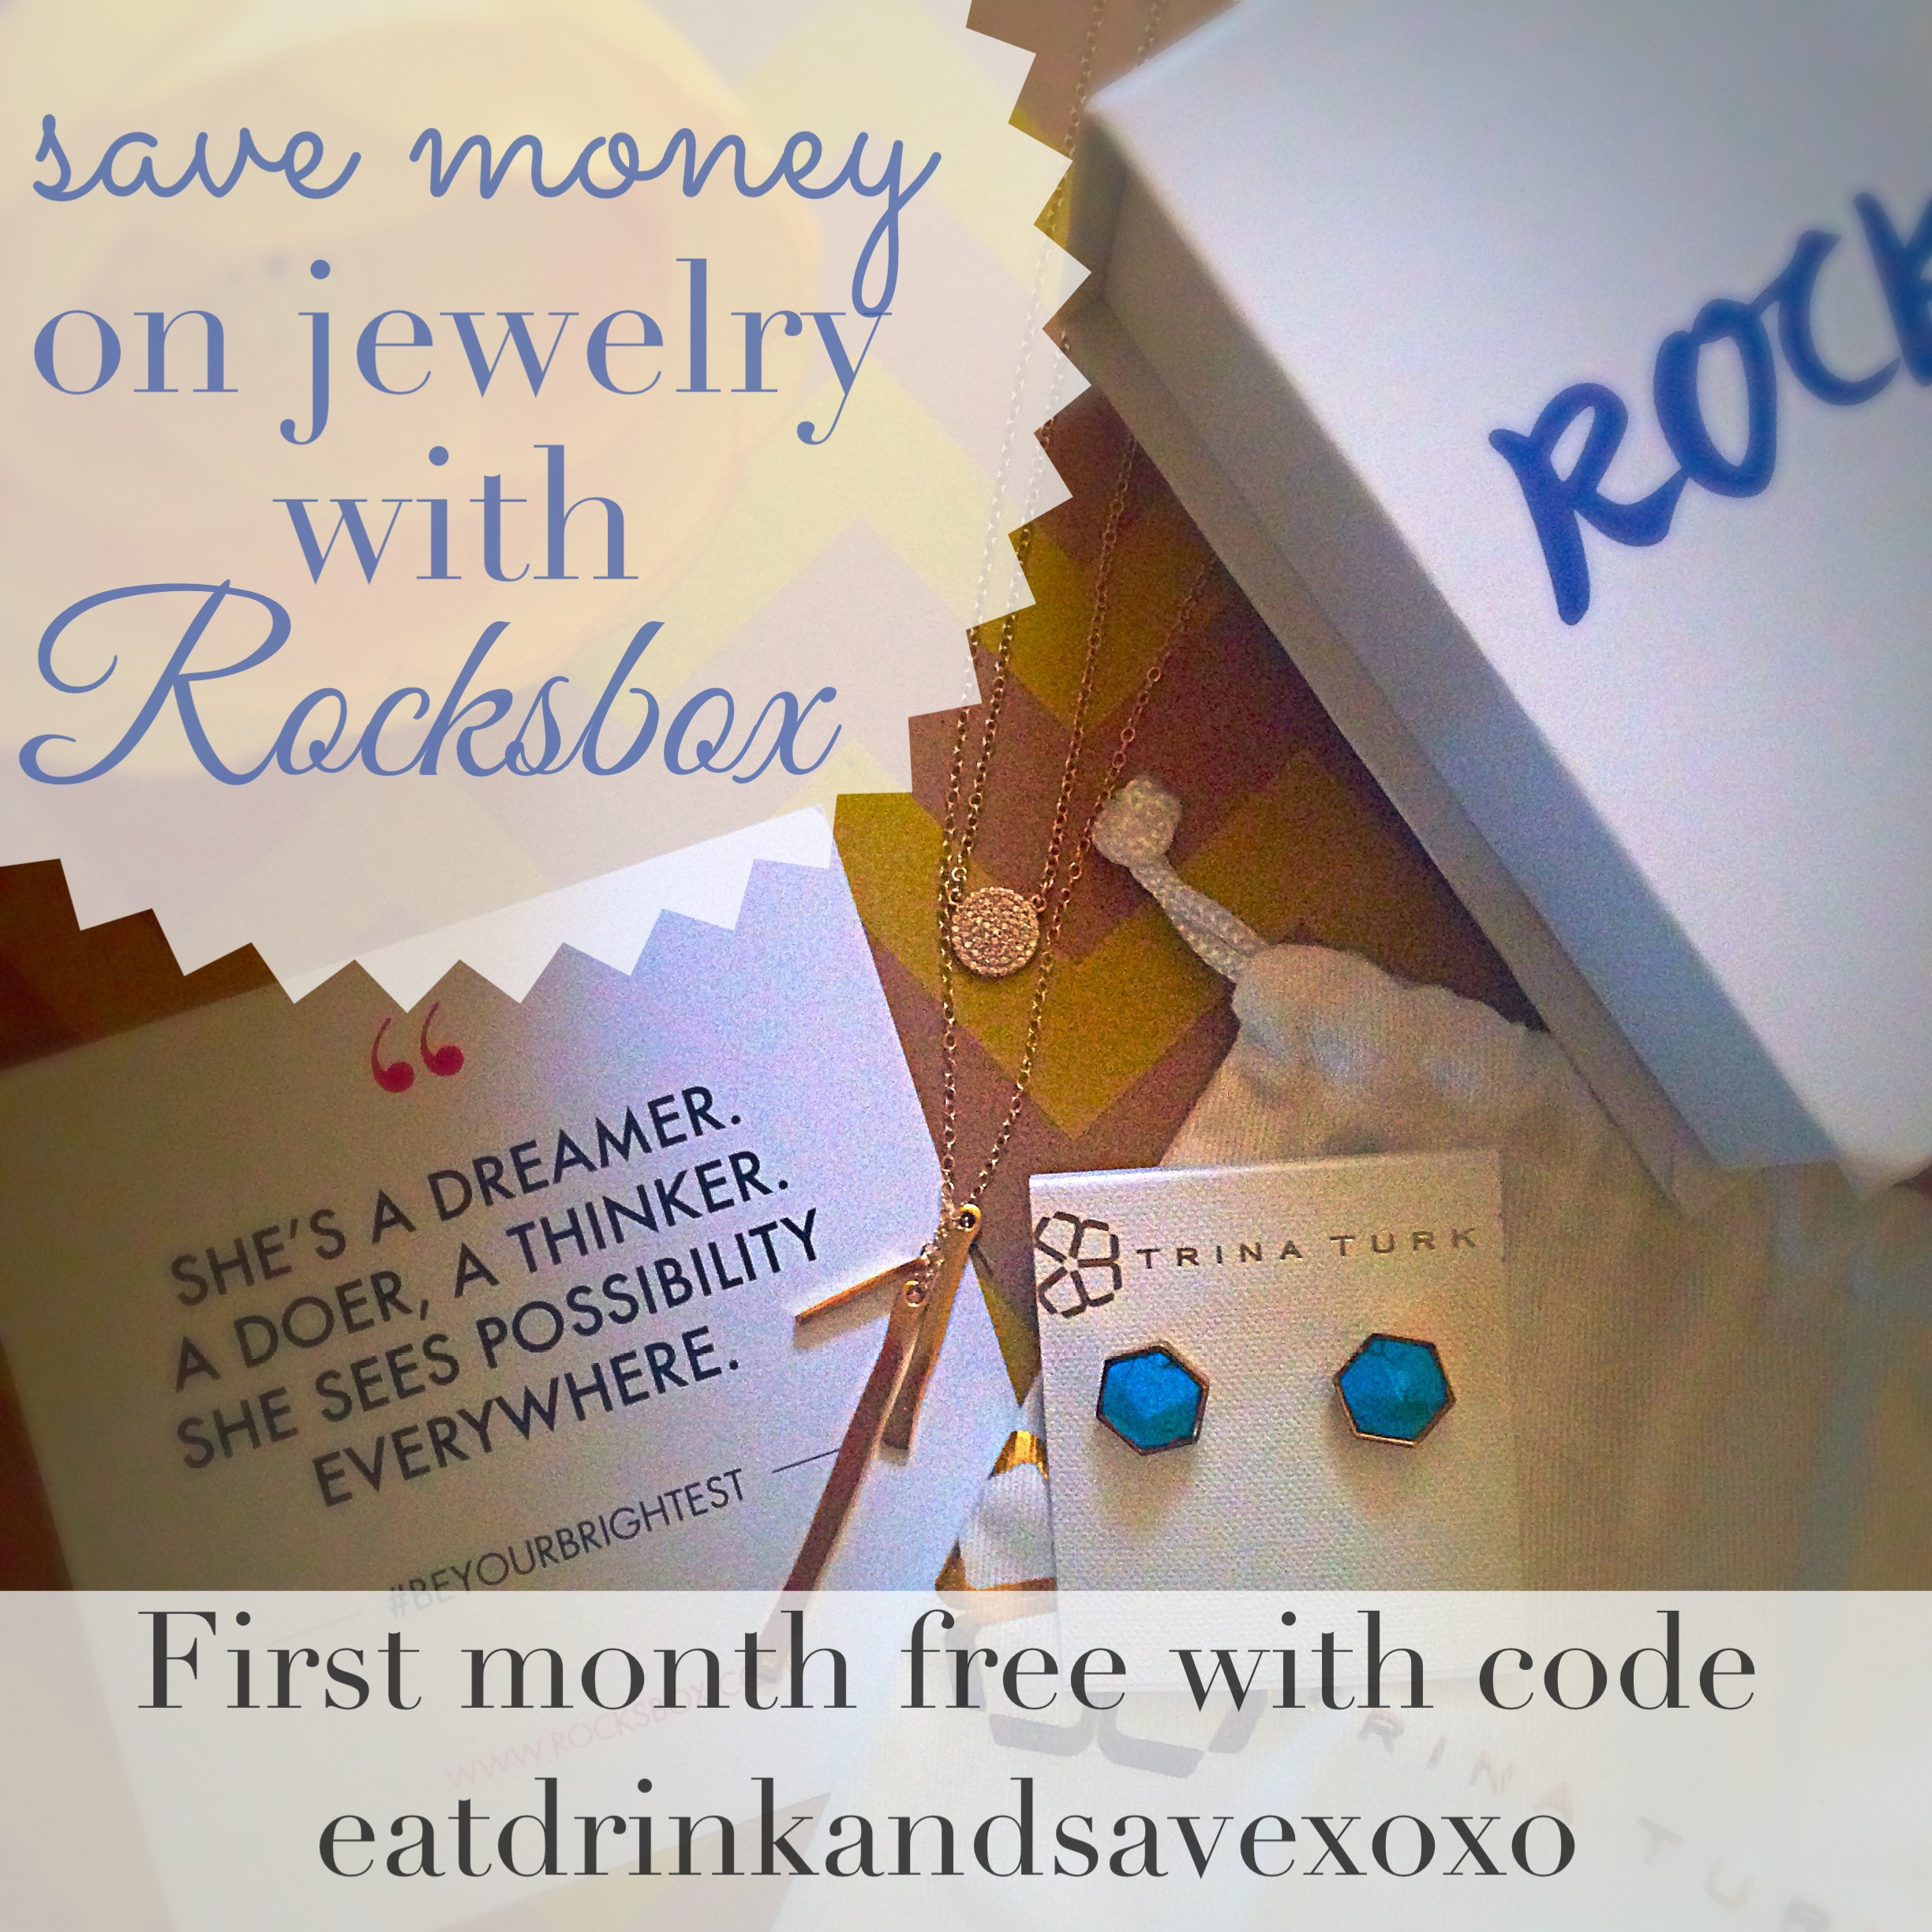 Save Money with Rocksbox coupon code for free month